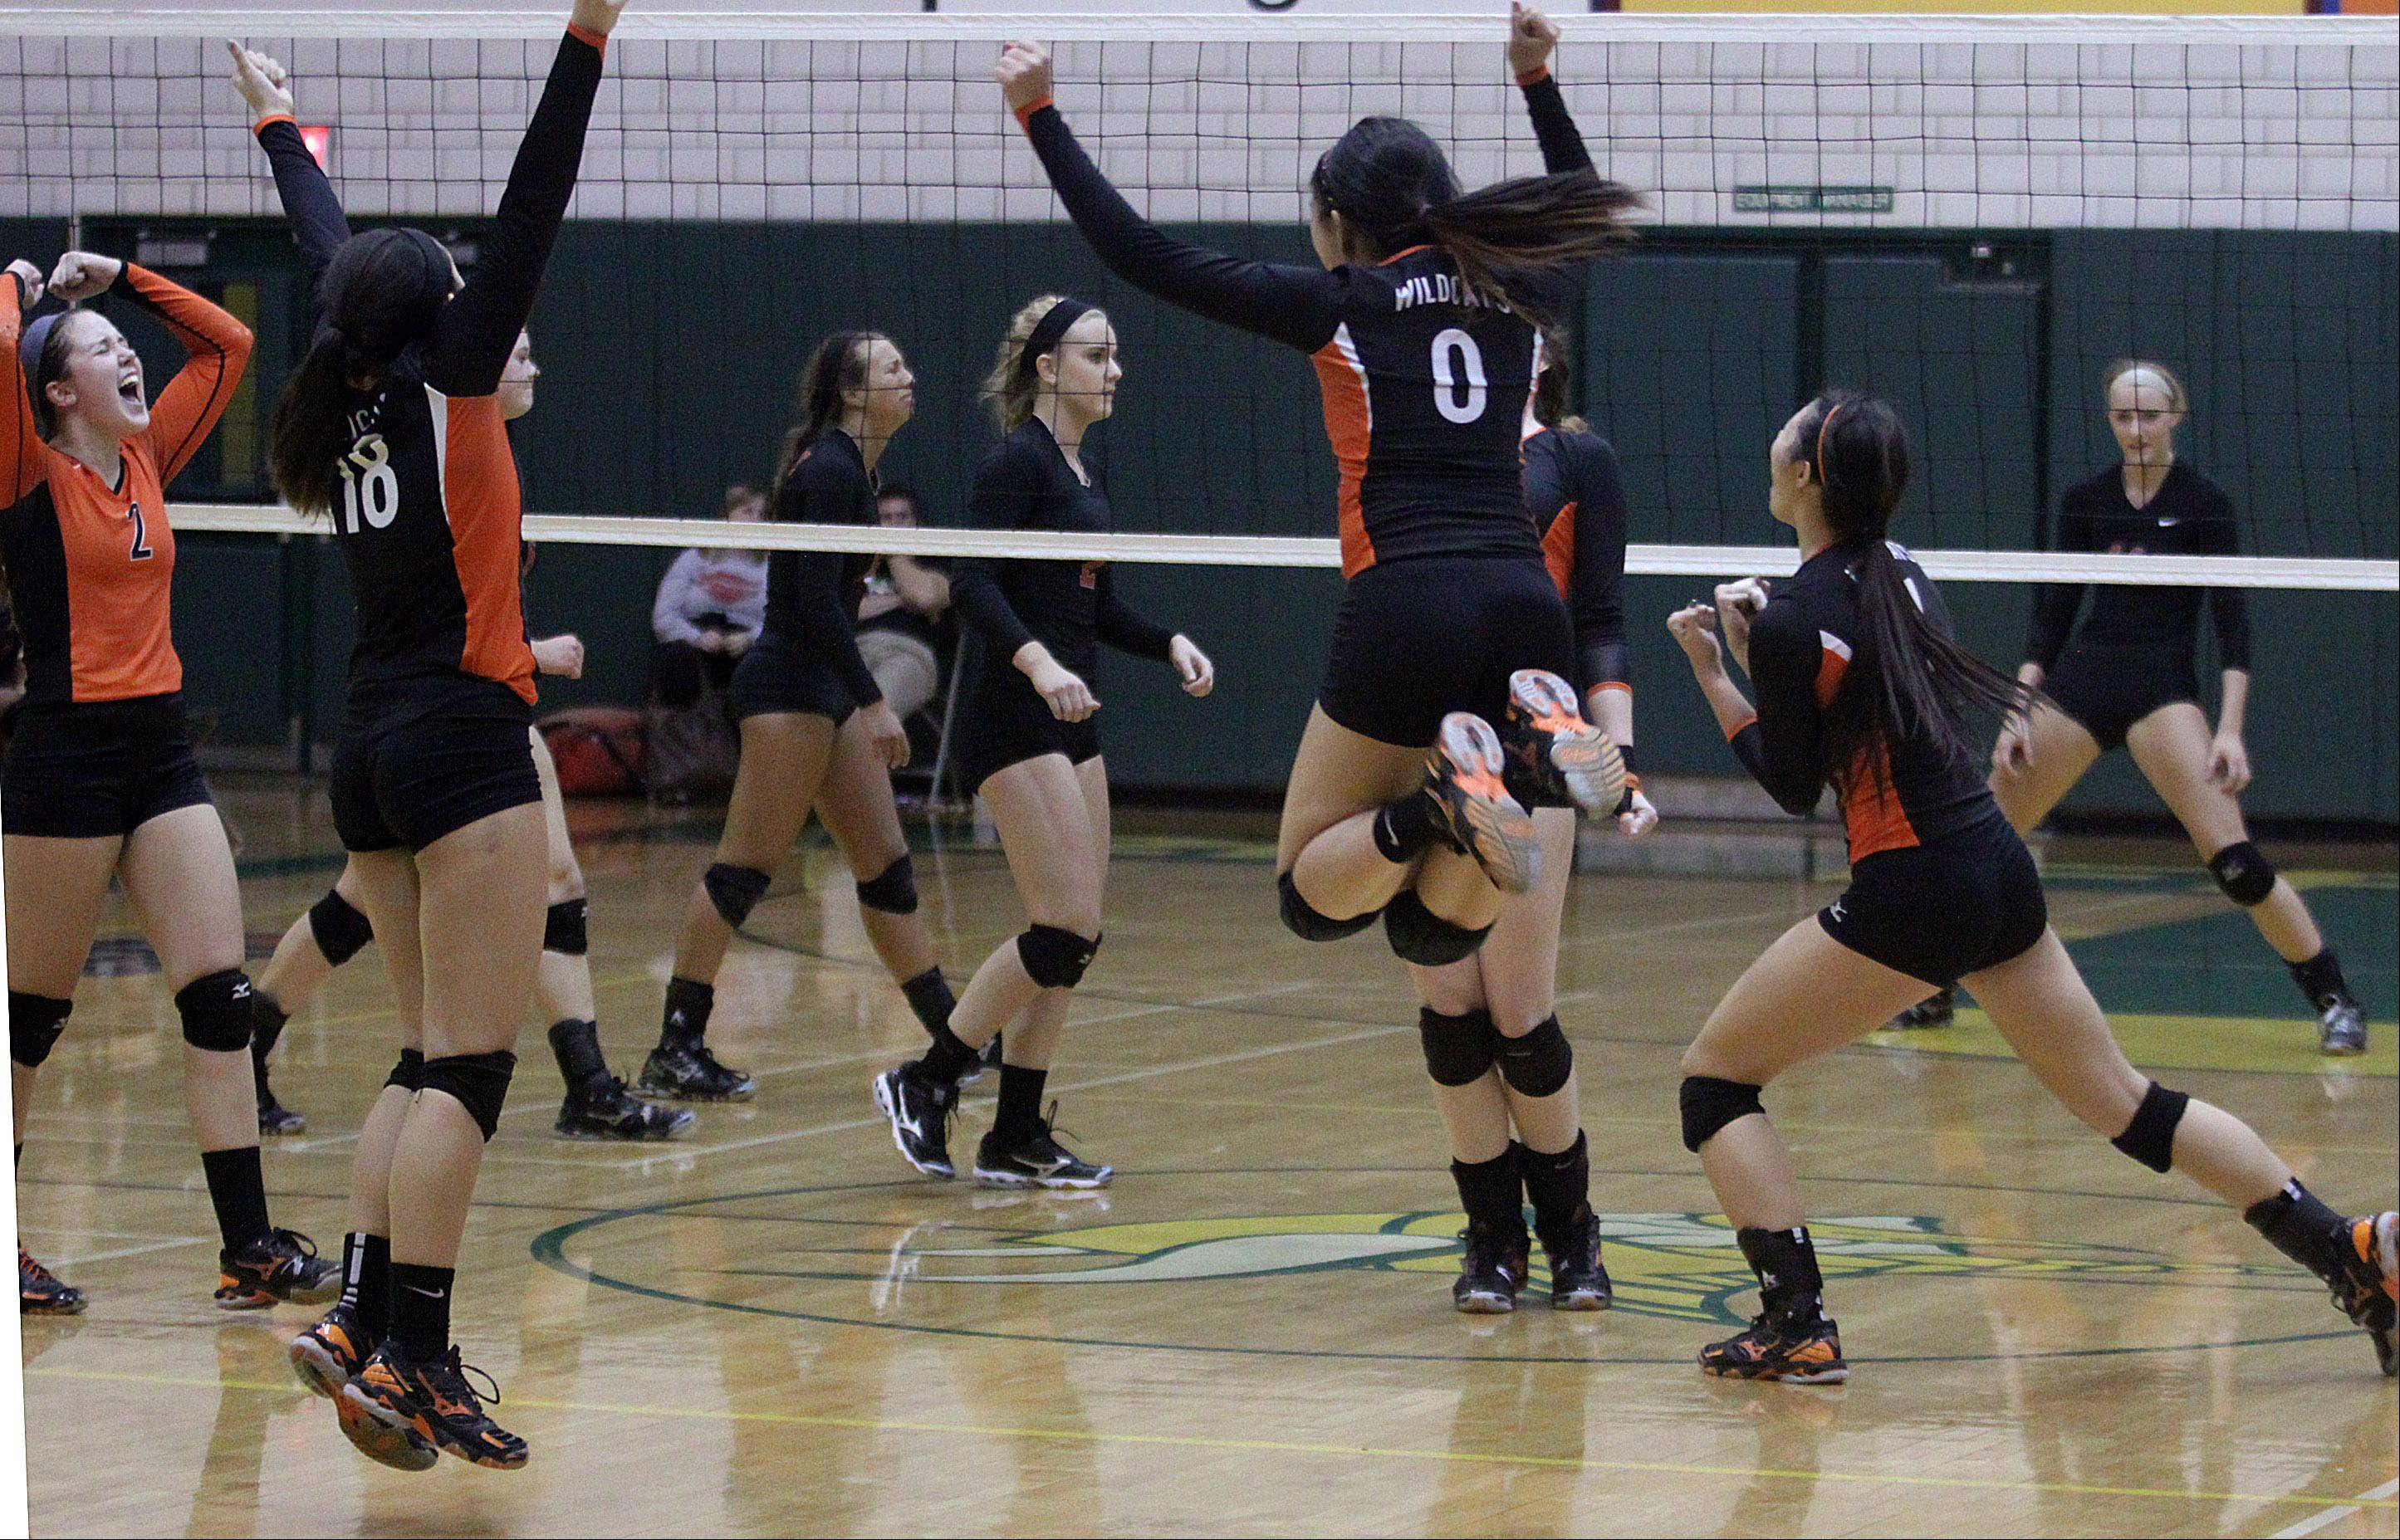 Libertyville's players erupt with celebration as Palatine's players walk off the court at Fremd on Thursday night.